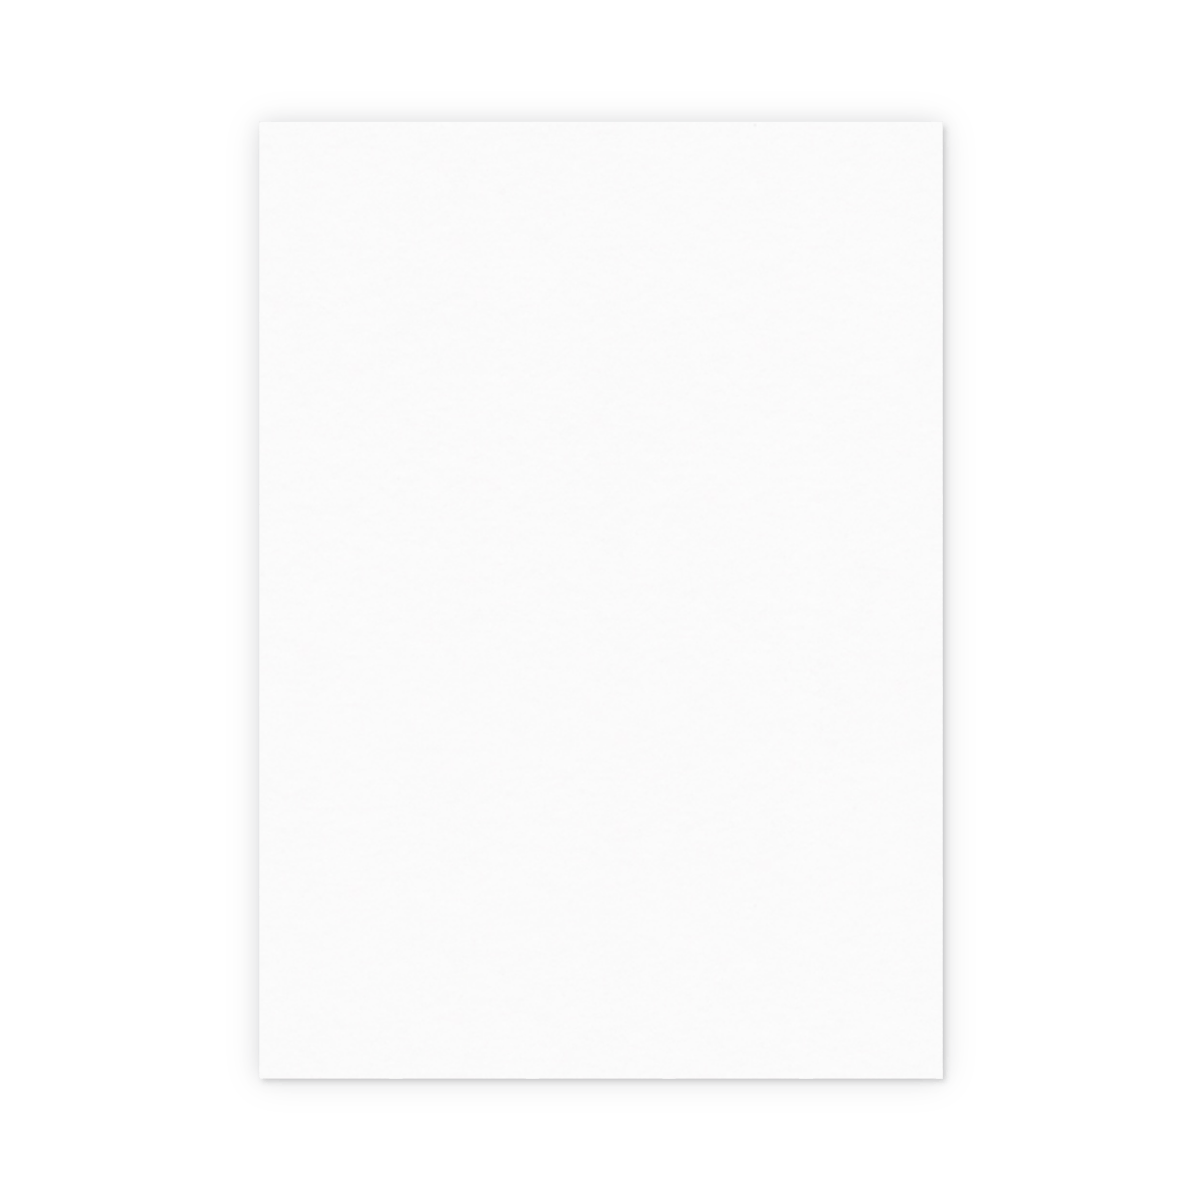 Https%3a%2f%2fwww.papier.com%2fproduct image%2f84246%2f4%2fcalligraphy menu 20407 back 1565542804.png?ixlib=rb 1.1